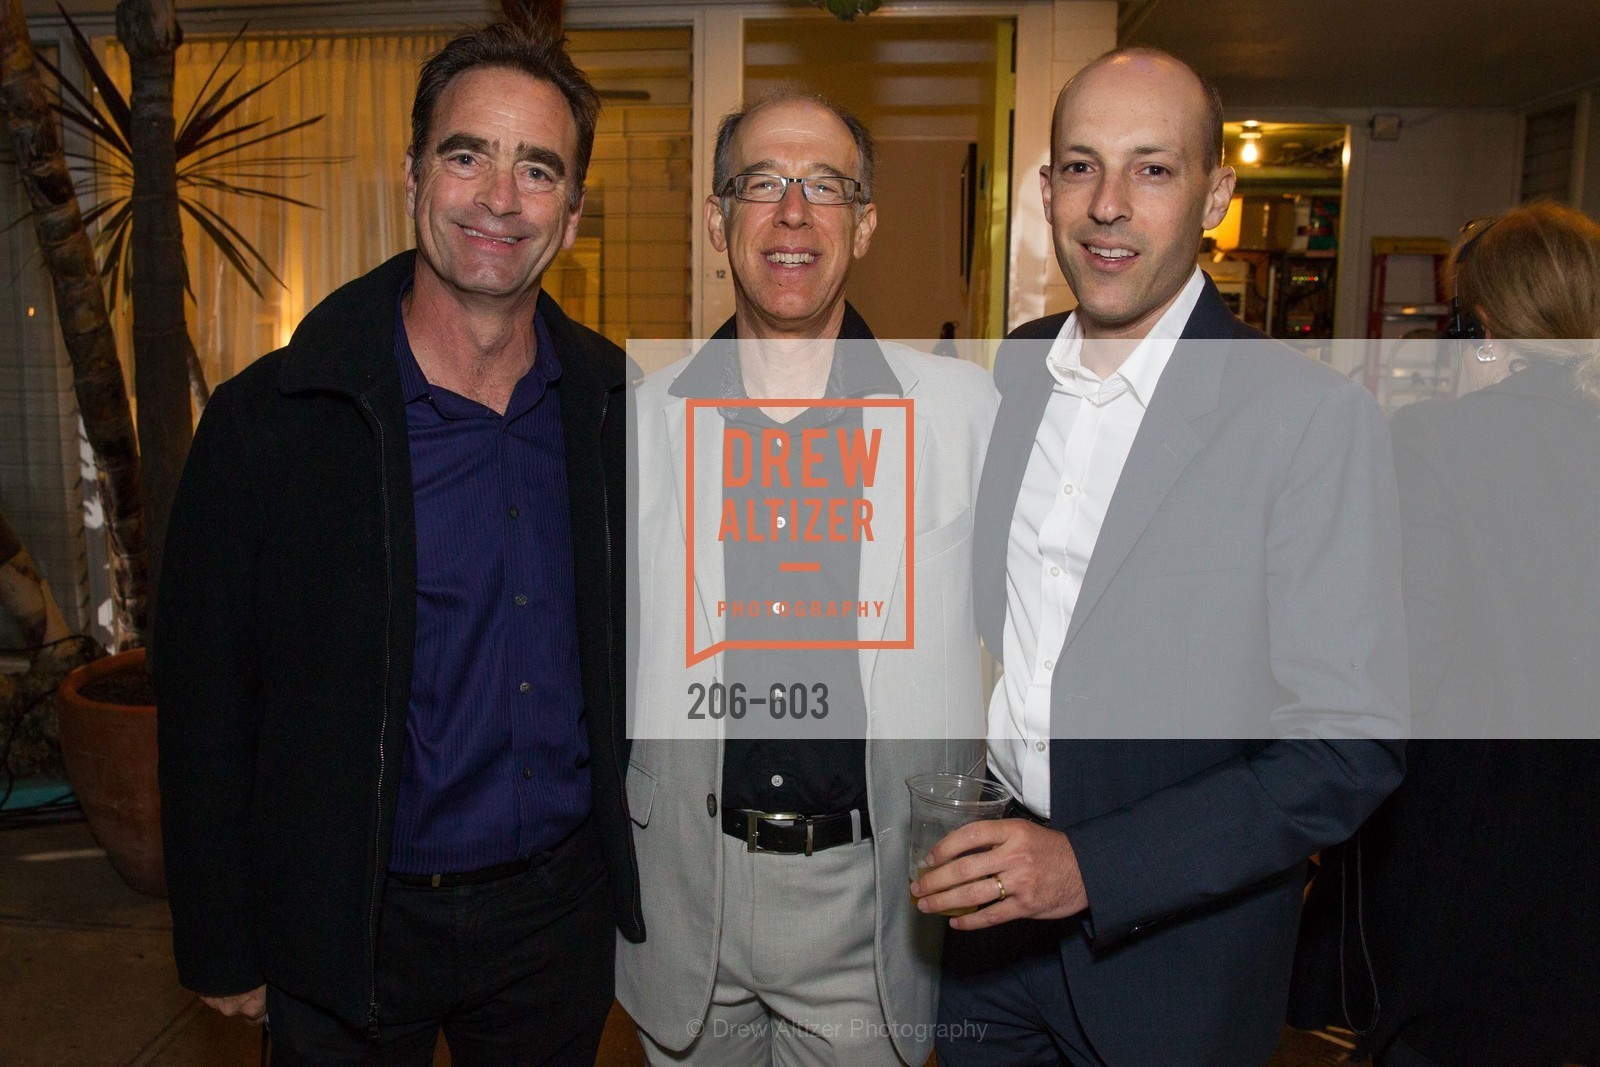 Steven Dinkelspiel, Don Falk, Jon Steinberg, 22nd Annual TNDC CELEBRITY POOL TOSS, US, October 8th, 2014,Drew Altizer, Drew Altizer Photography, full-service agency, private events, San Francisco photographer, photographer california